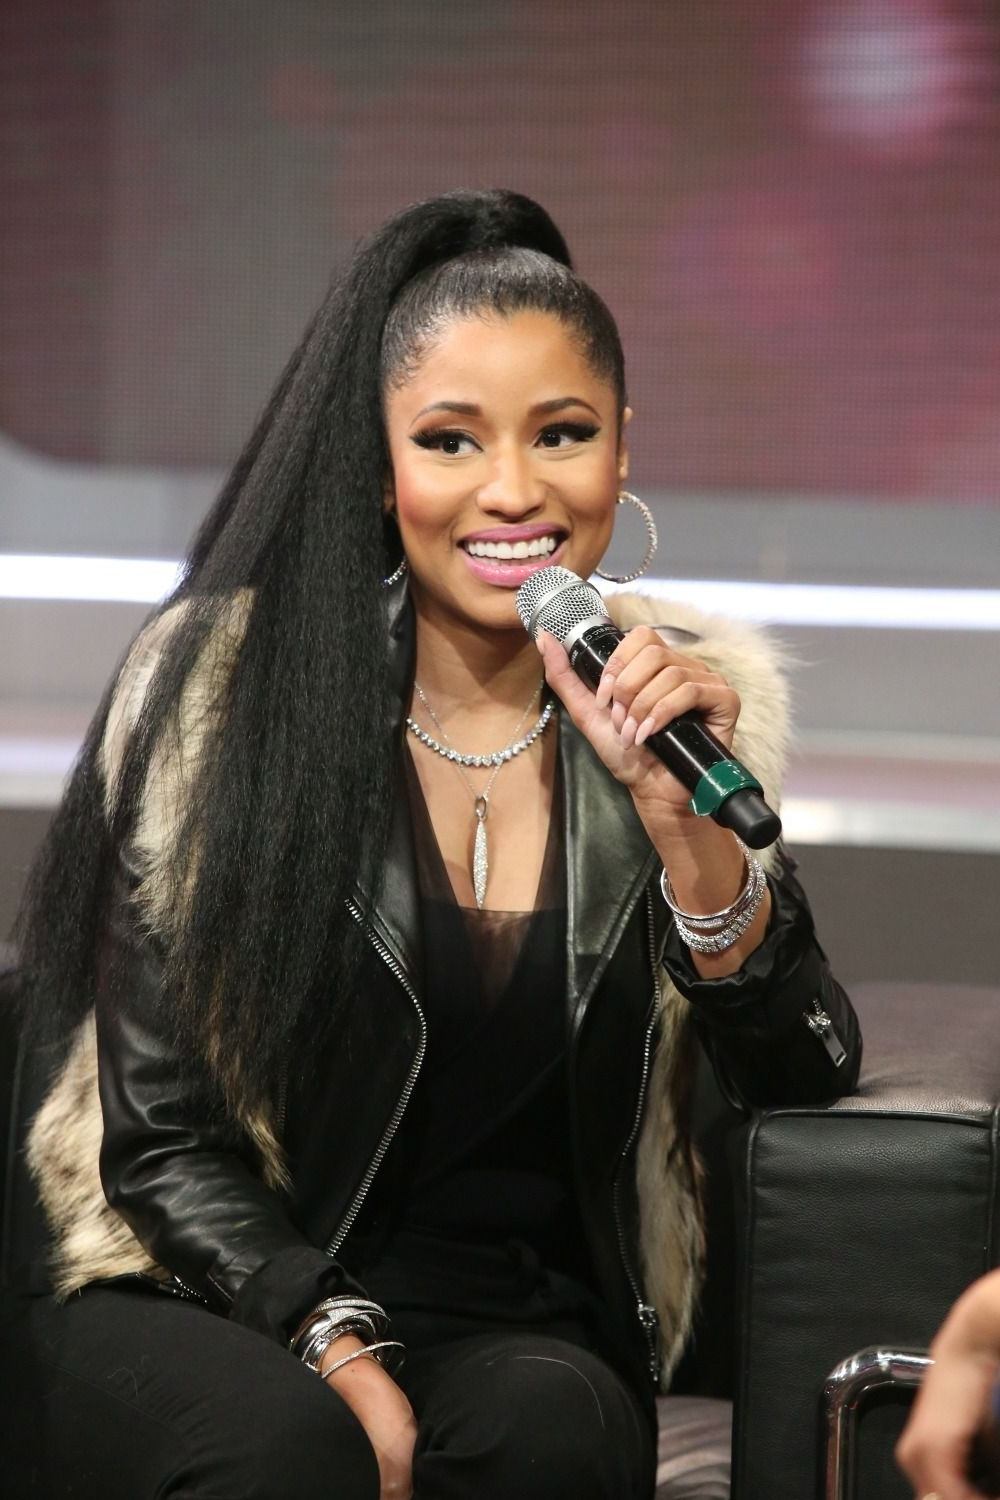 20 Ponytail Hairstyles – Easy Ponytail Ideas You Should This Summer Inside Most Recent Minaj Pony Hairstyles With Arched Bangs (View 2 of 20)